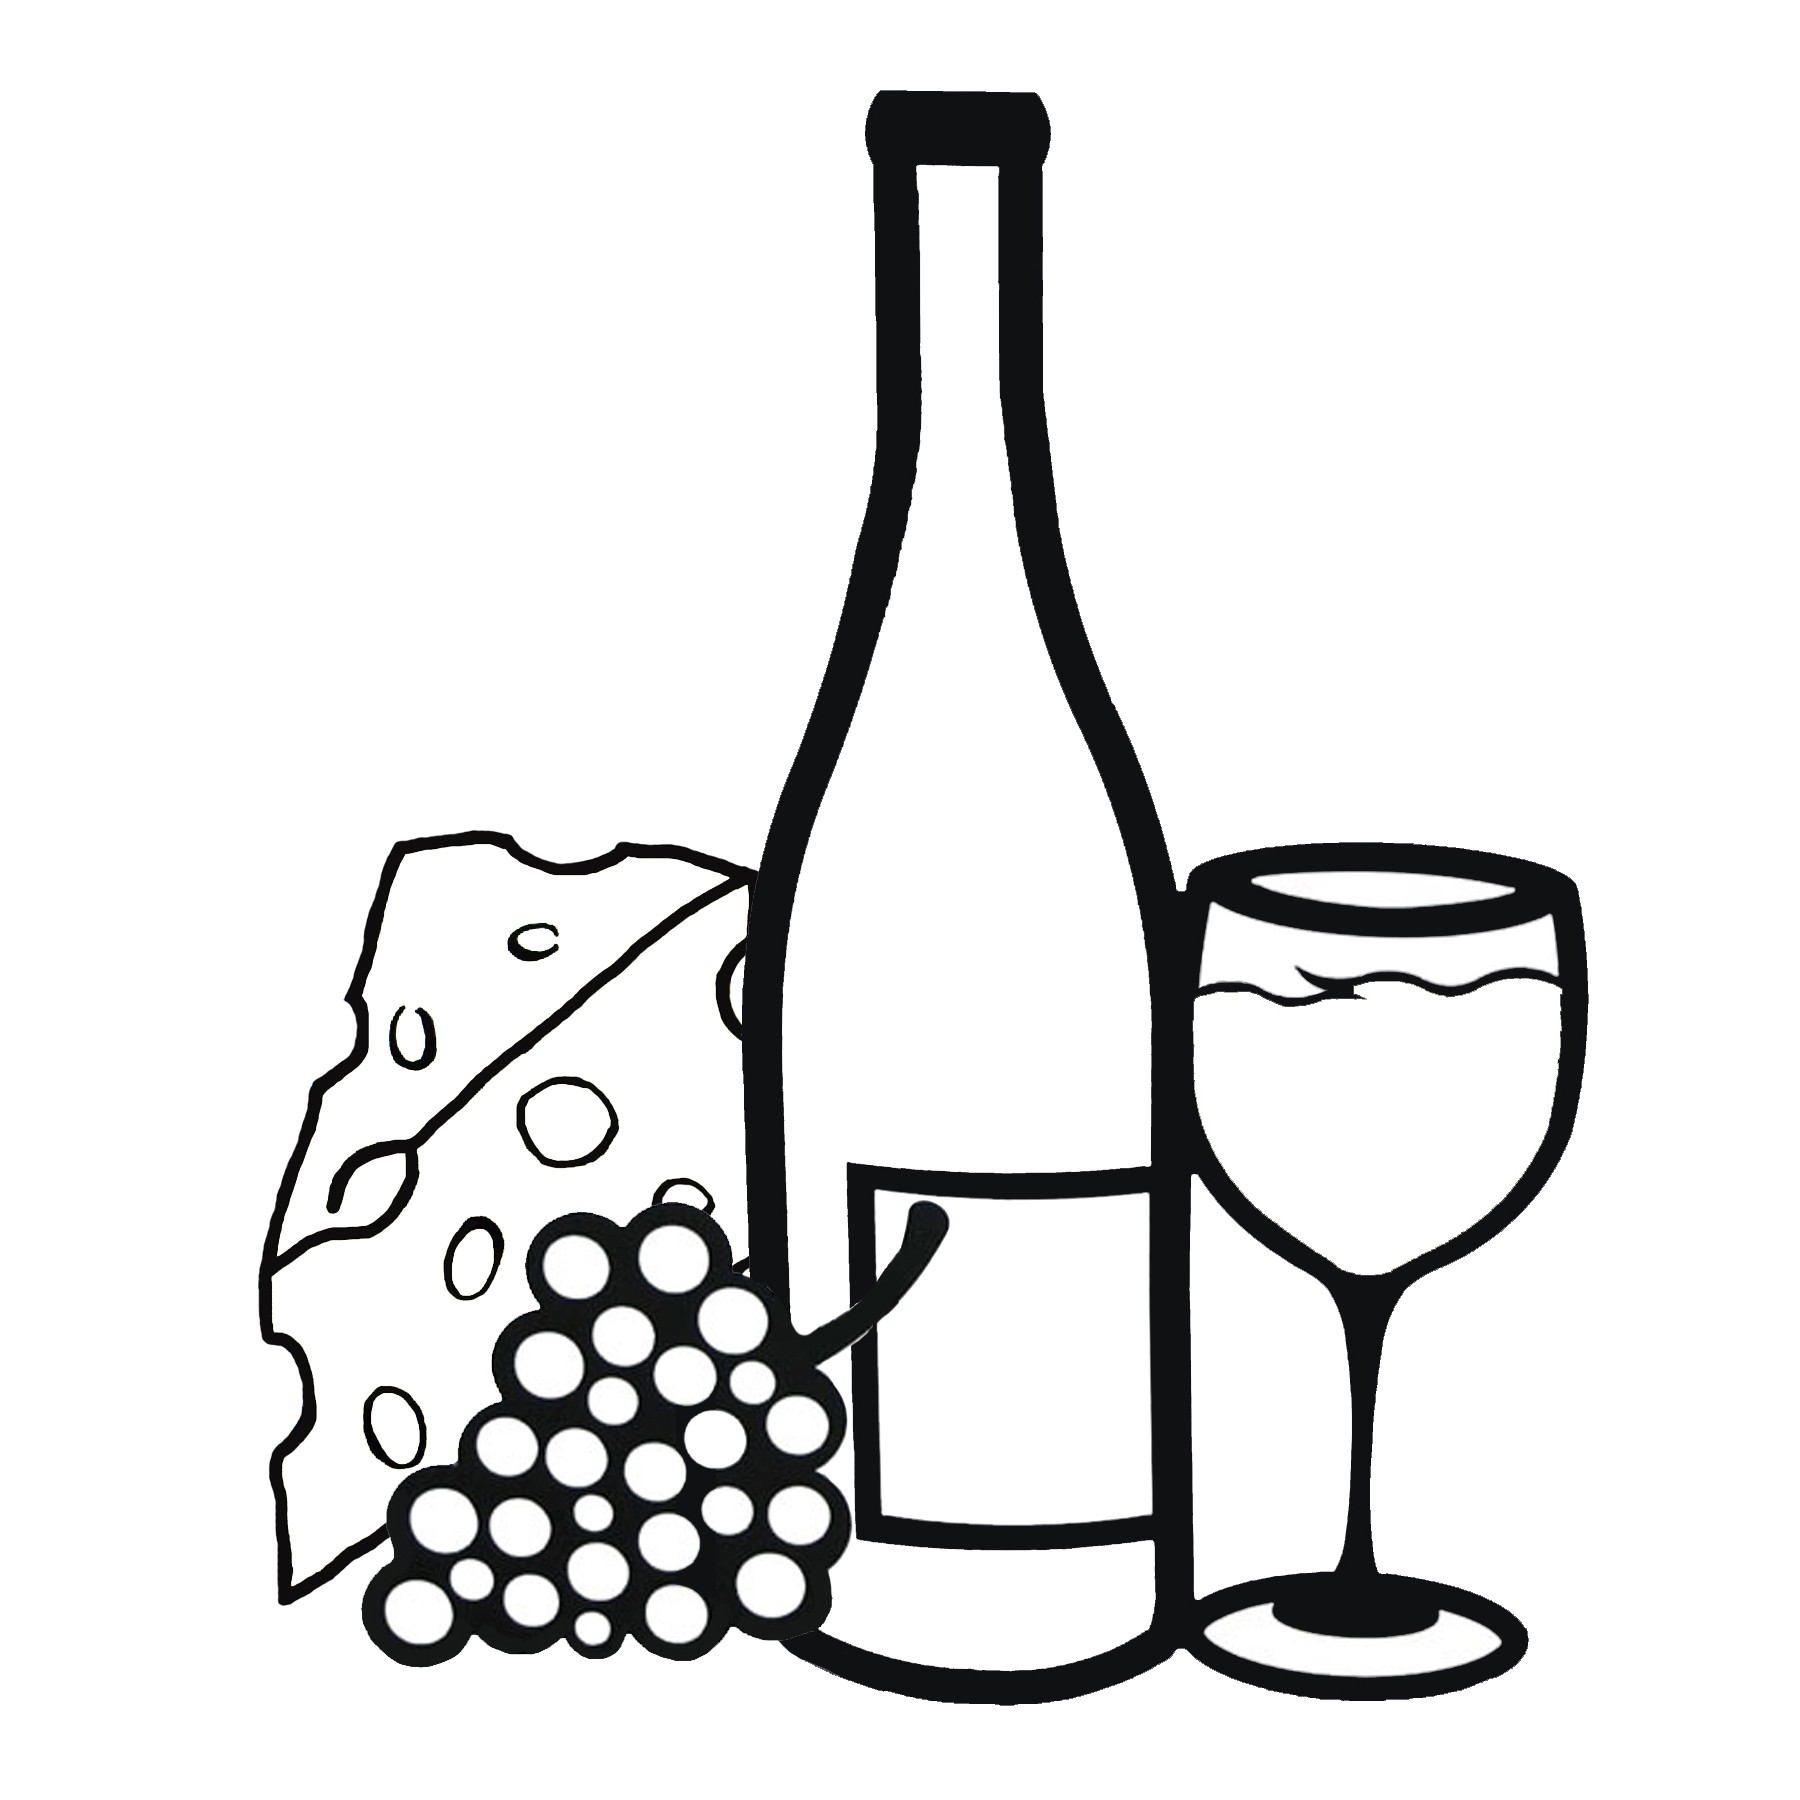 Wine bottle black and white clipart picture library stock Free Wine Bottle And Glass, Download Free Clip Art, Free Clip Art on ... picture library stock